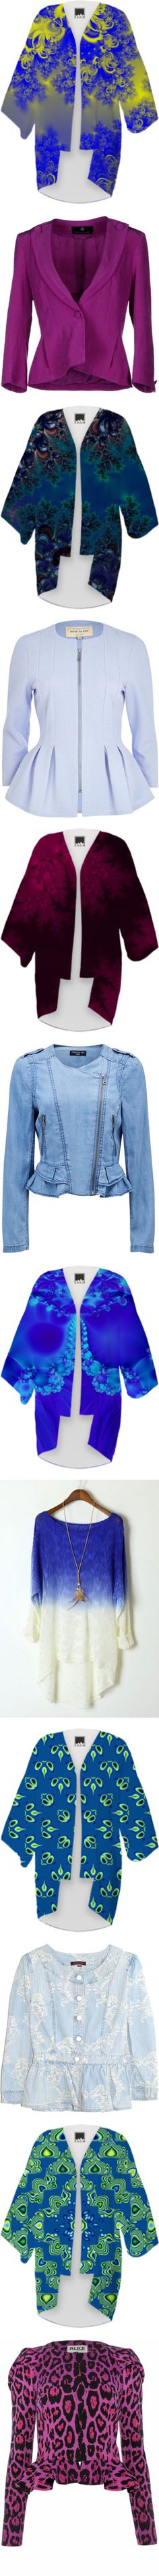 * #OUTERWEAR: #BLUE & #PURPLE * by artist4god-rose-santuci-sofranko on Polyvore featuring polyvore, fashion, clothing, intimates, robes, coats, kimono, kimono robe, outerwear, jackets, blazers, purple, rena lange, long sleeve jacket, multi pocket jacket, single button blazer, silk blazer, sale, textured jacket, light blue jacket, zipper jacket, collarless jacket, jersey knit jacket, purple robe, purple kimono, chambray sky, blue moto jacket, blue biker jacket, biker jacket, chambray jacket…